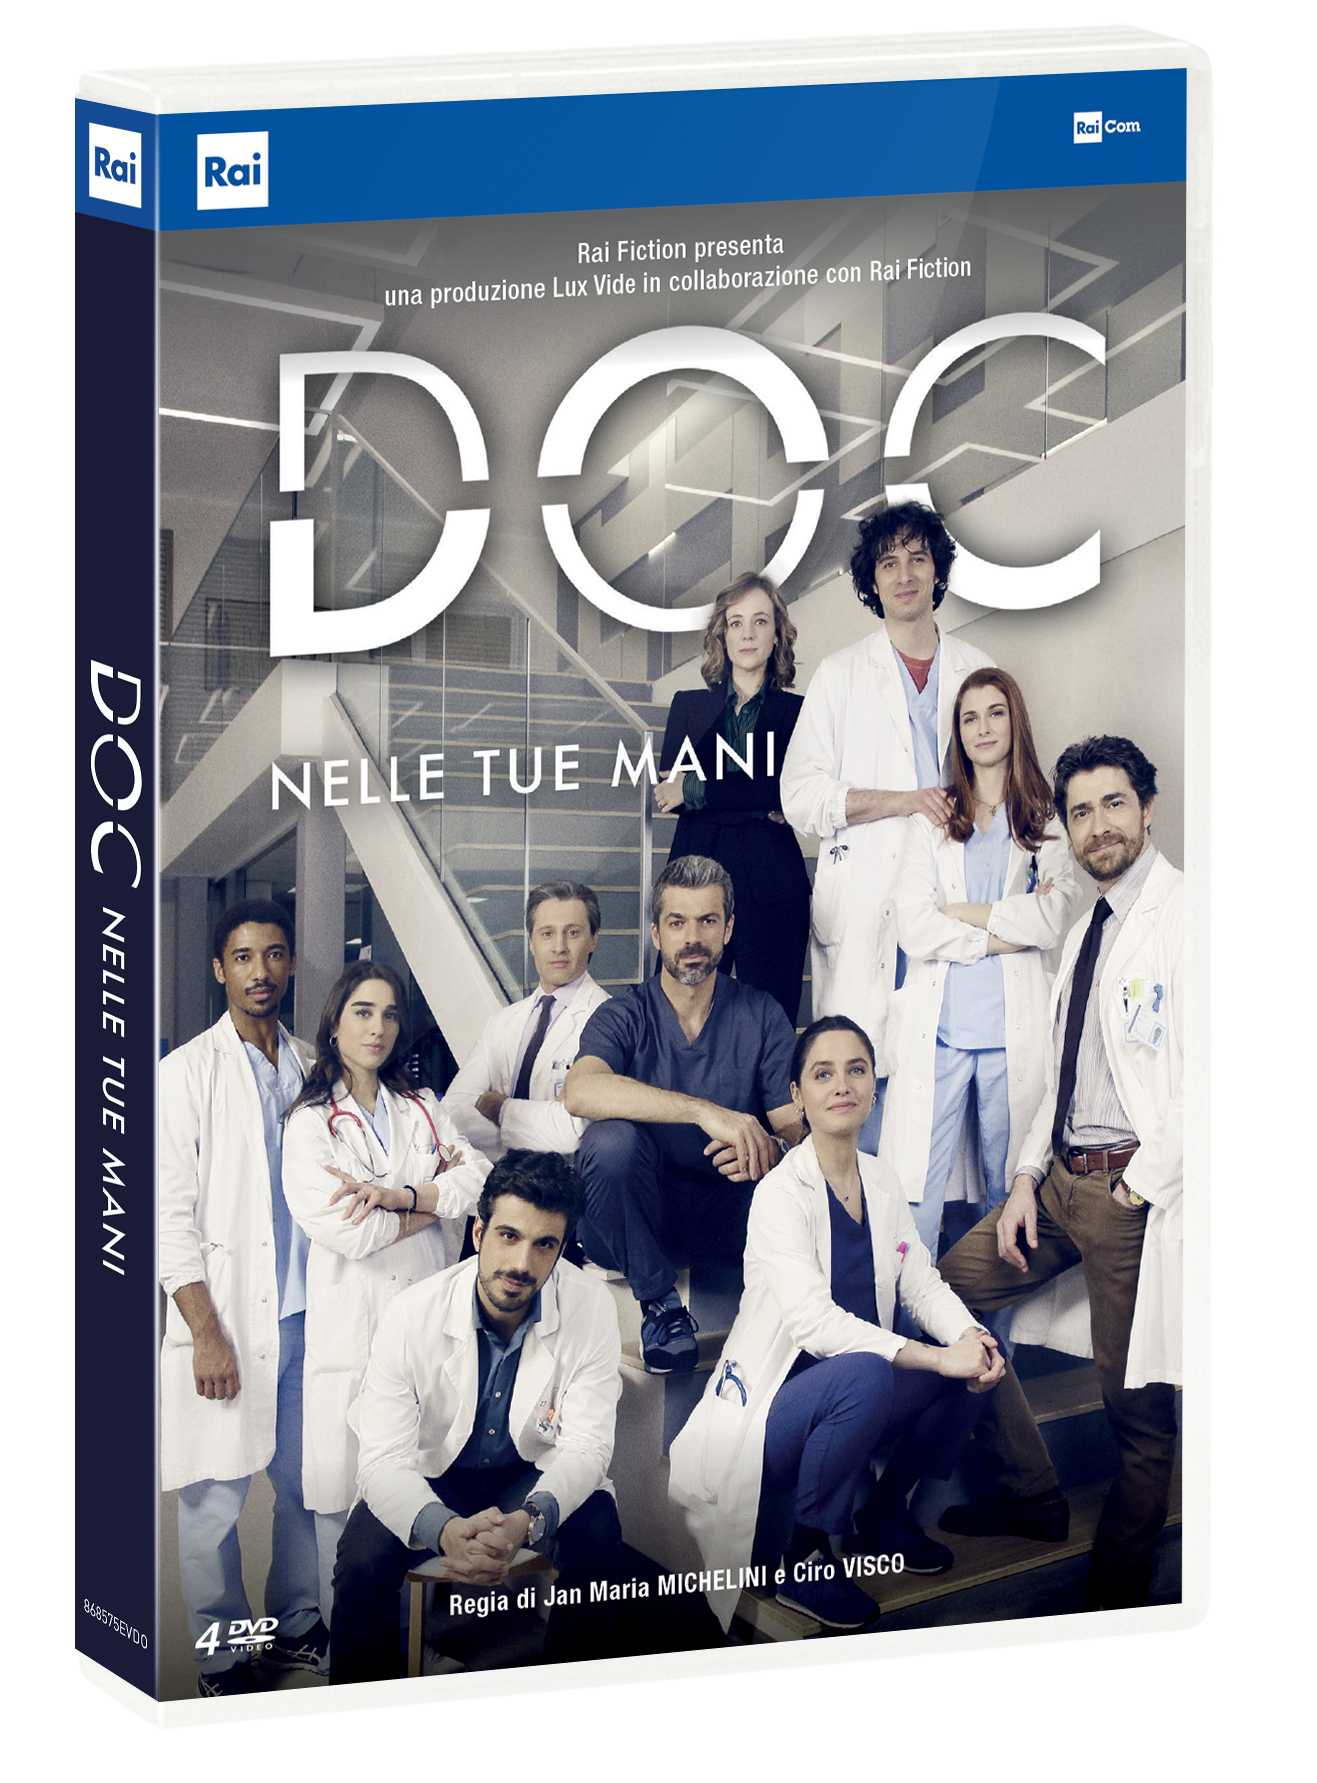 DVD box set review: Doc - In your hands, the Rai series with Argentero